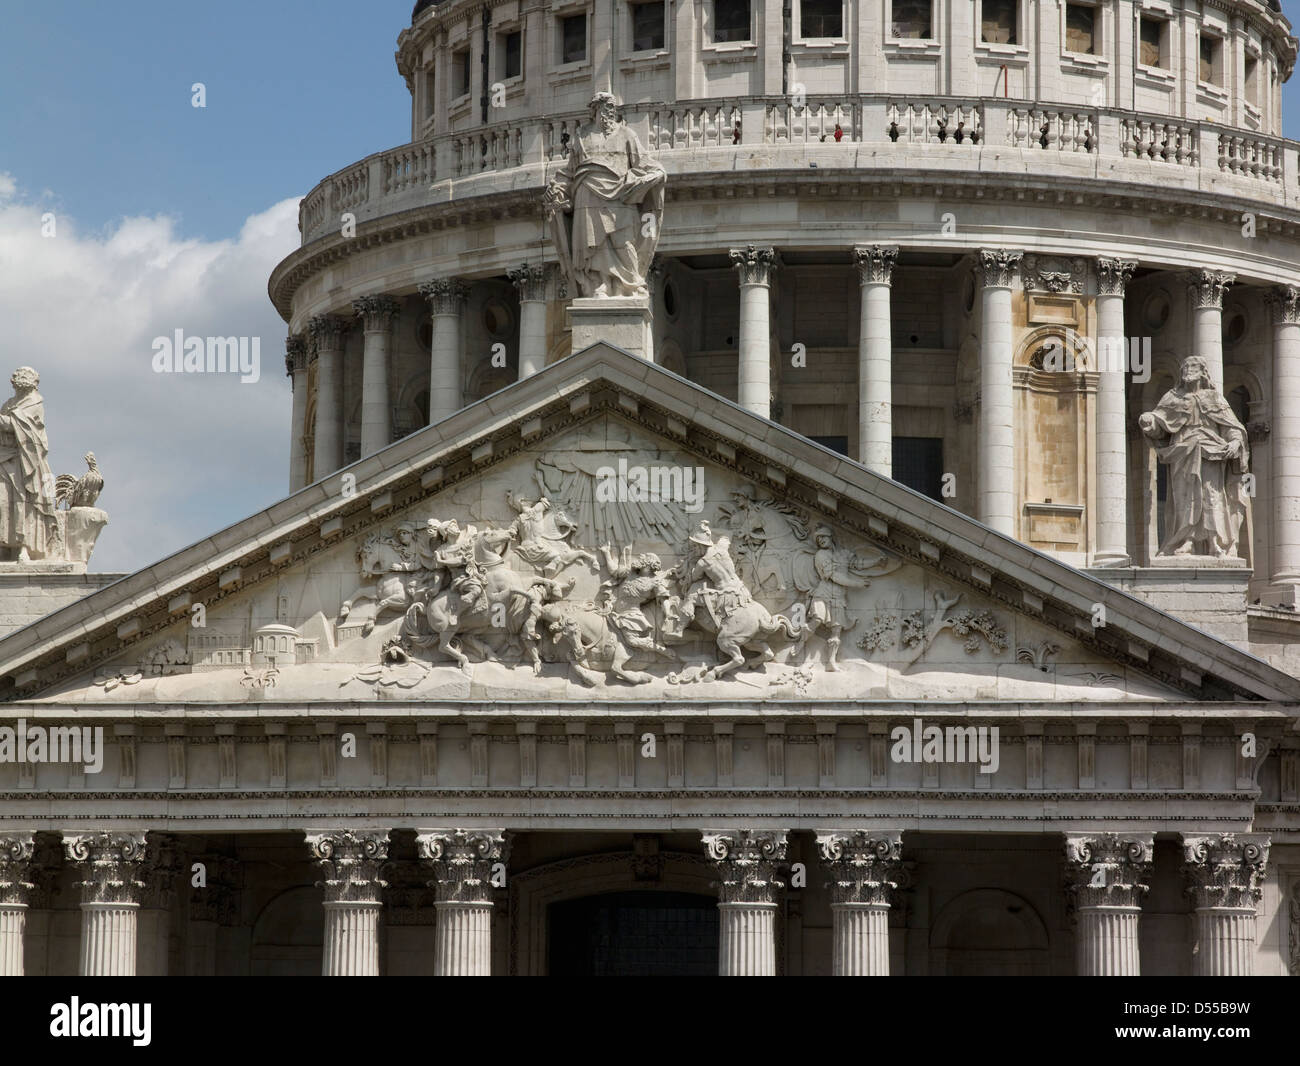 Saint Paul's Cathedral, London, pediment and dome collonade - Stock Image